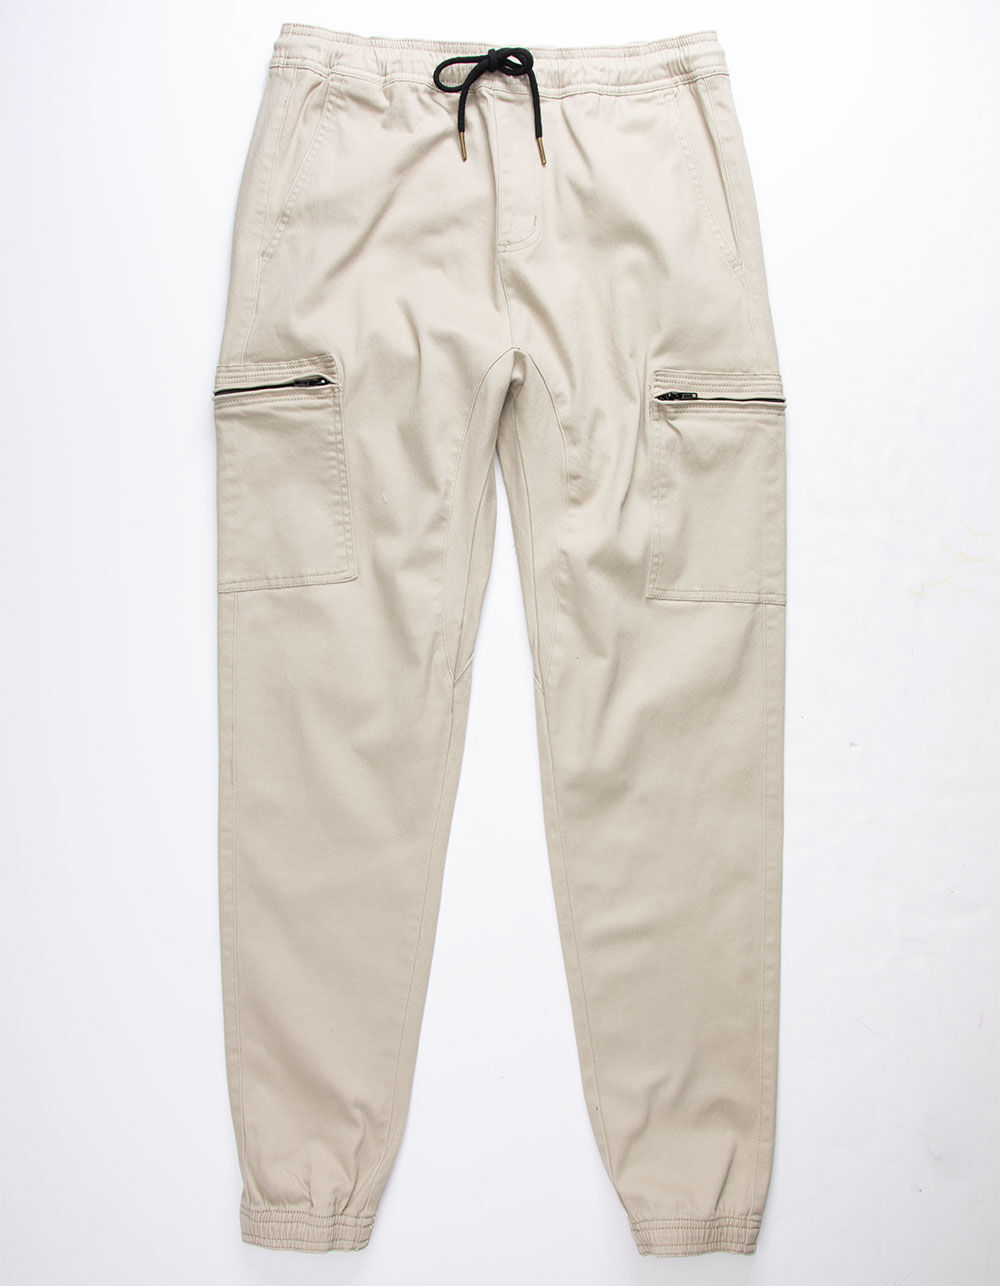 CHARLES AND A HALF Zip Pocket Khaki Cargo Pants